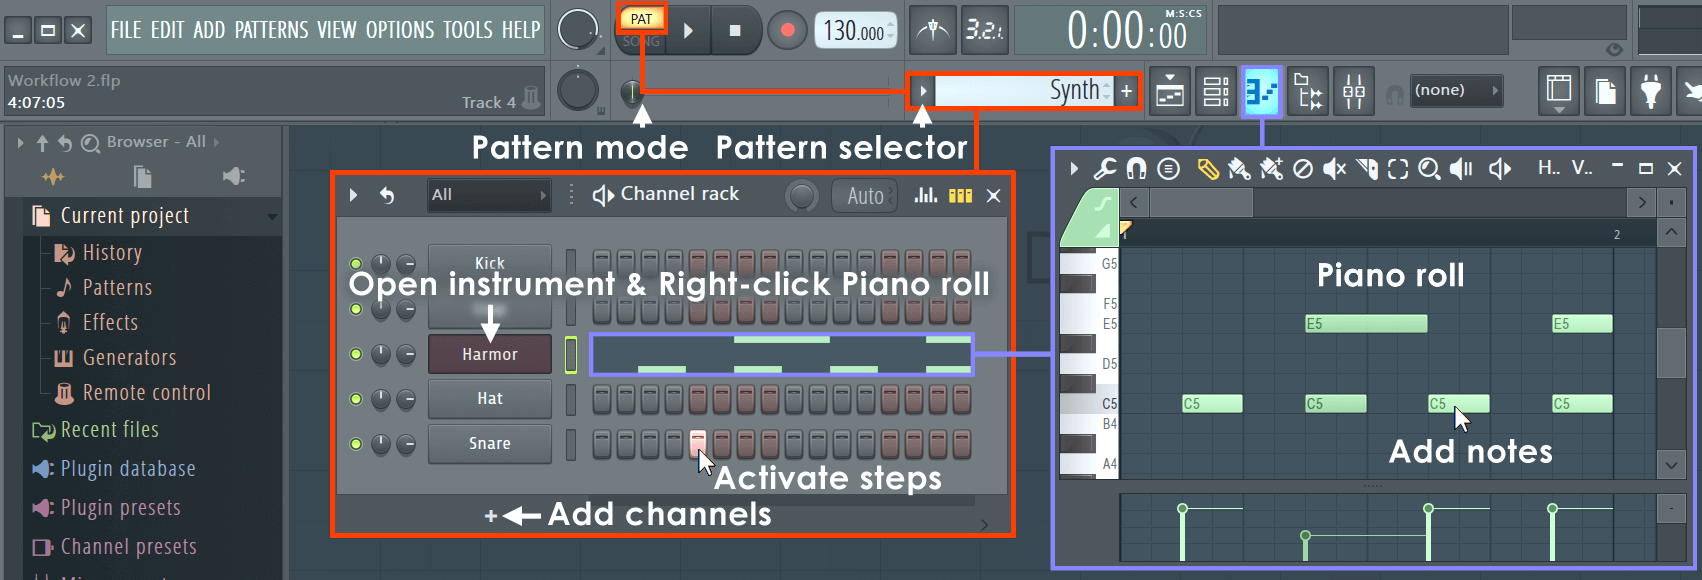 How to use FL Studio